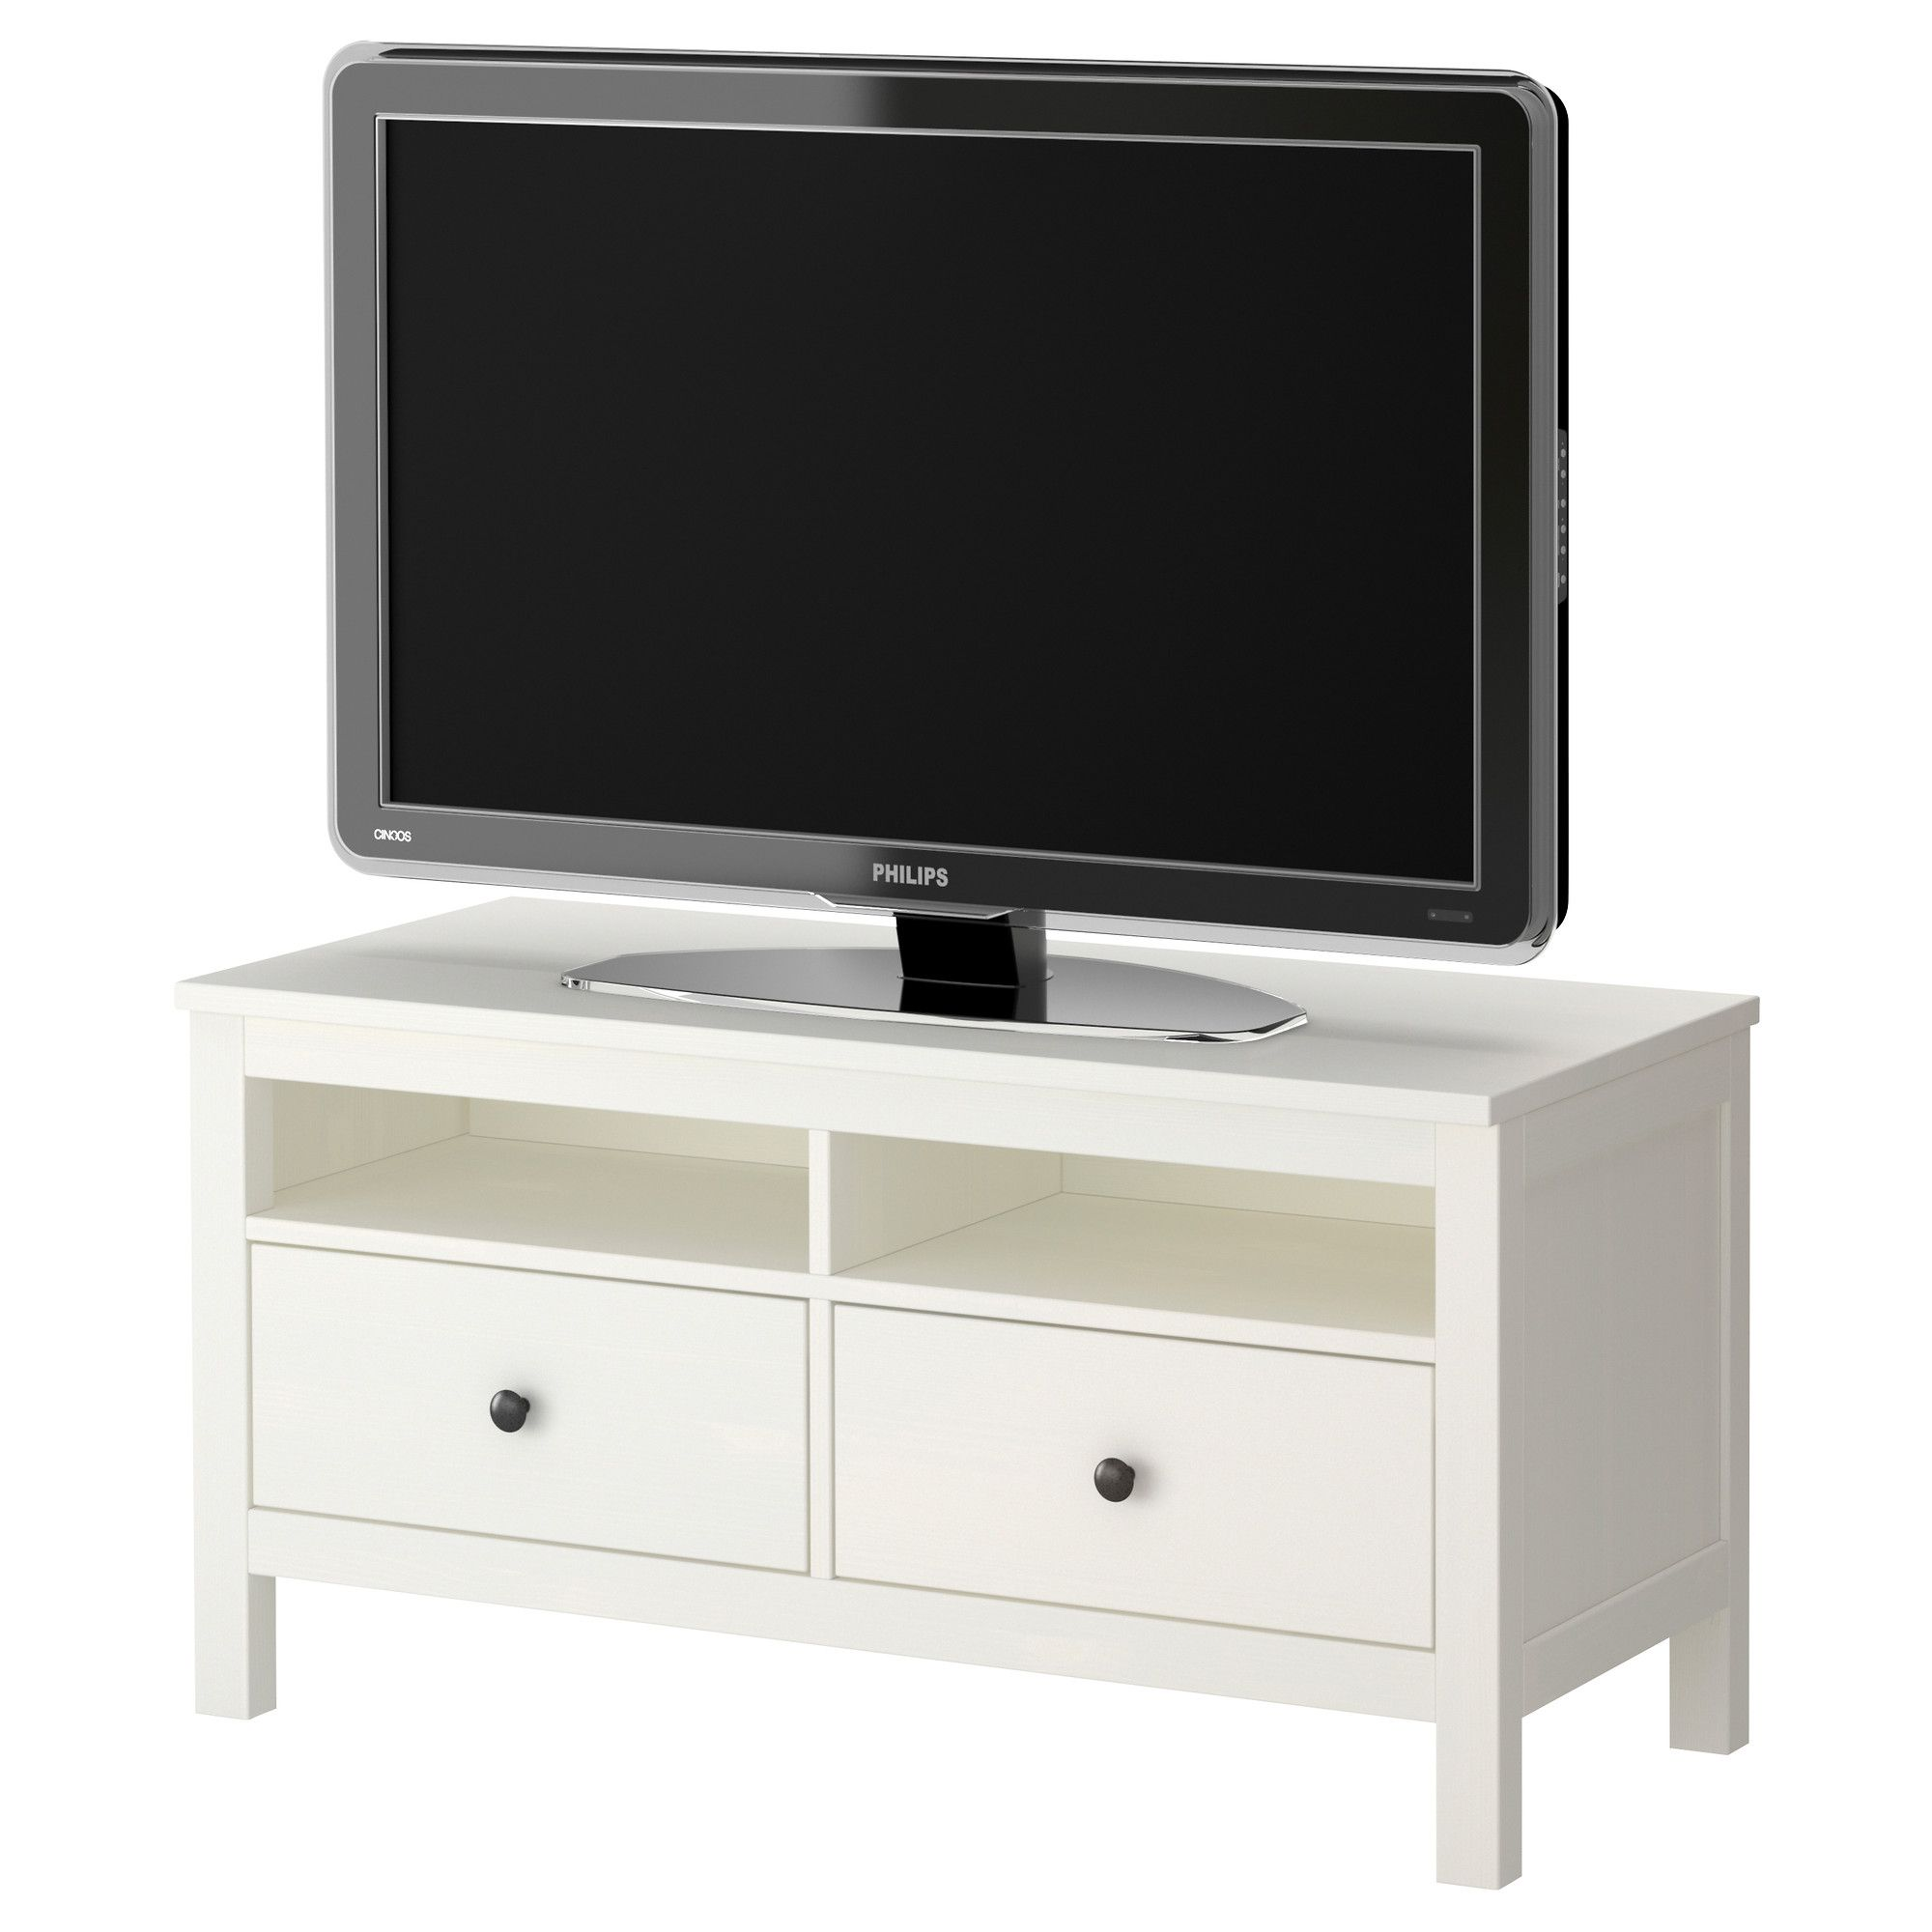 Hemnes mueble tv blanco ikea decoraci n pinterest - Mueble tv hemnes ...